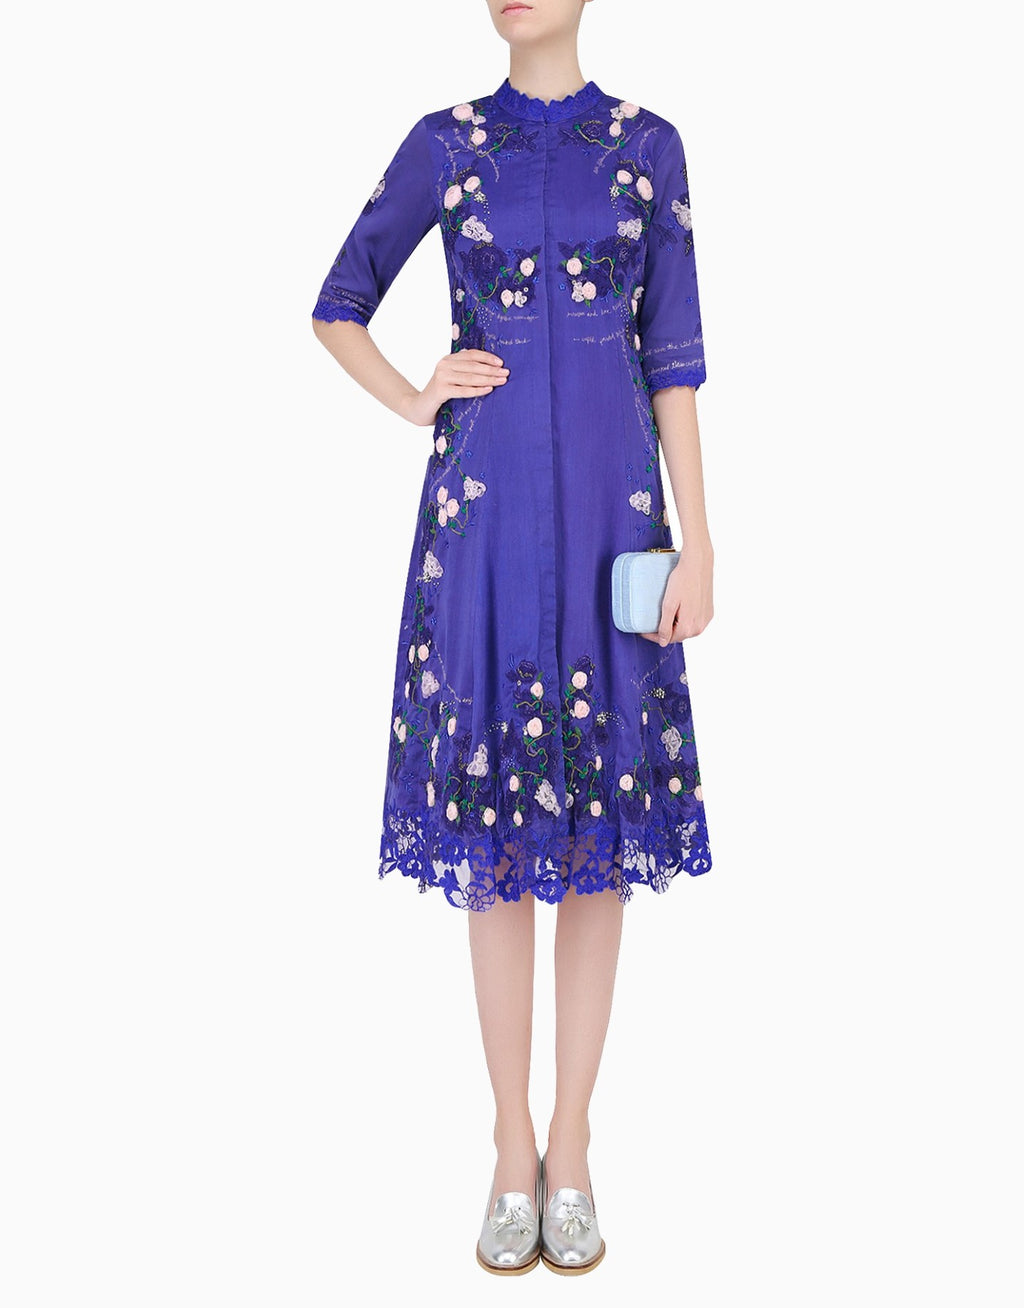 ABHISHEK VERMAA NAVY TEA ROSE TUNIC